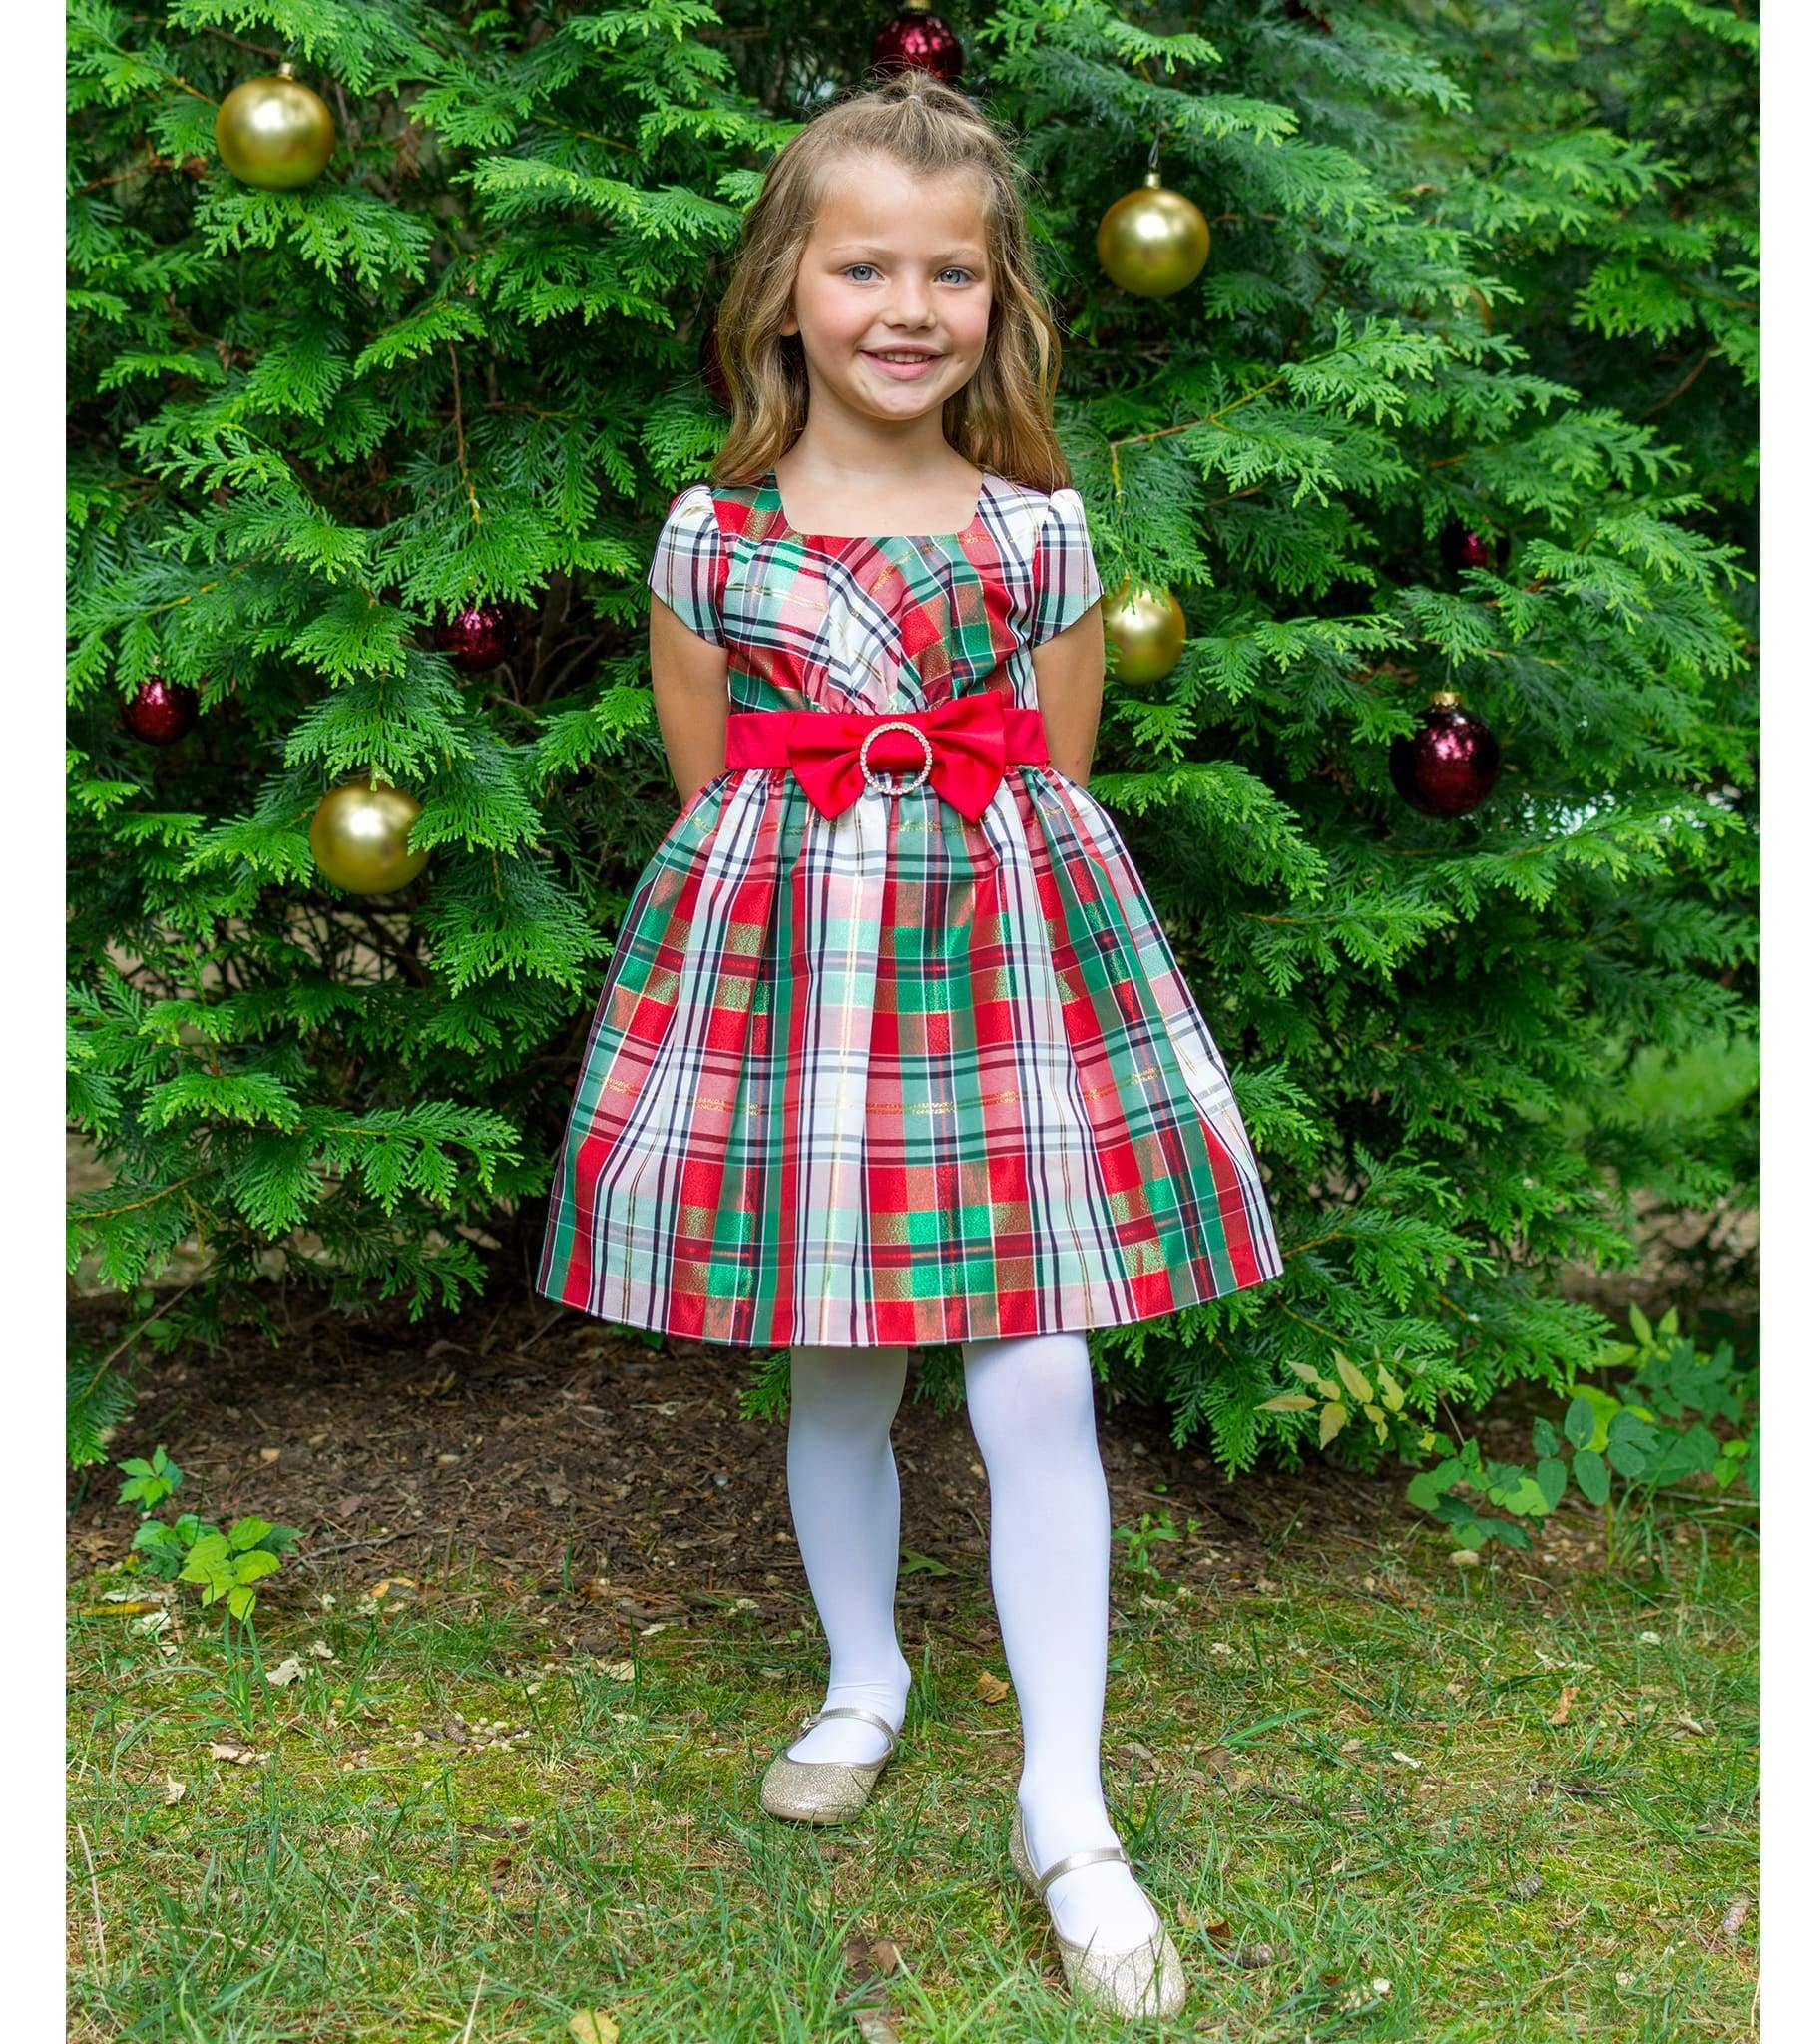 plaid dress red and green christmas dresses for girls girls christmas dresses - Christmas Plaid Dress